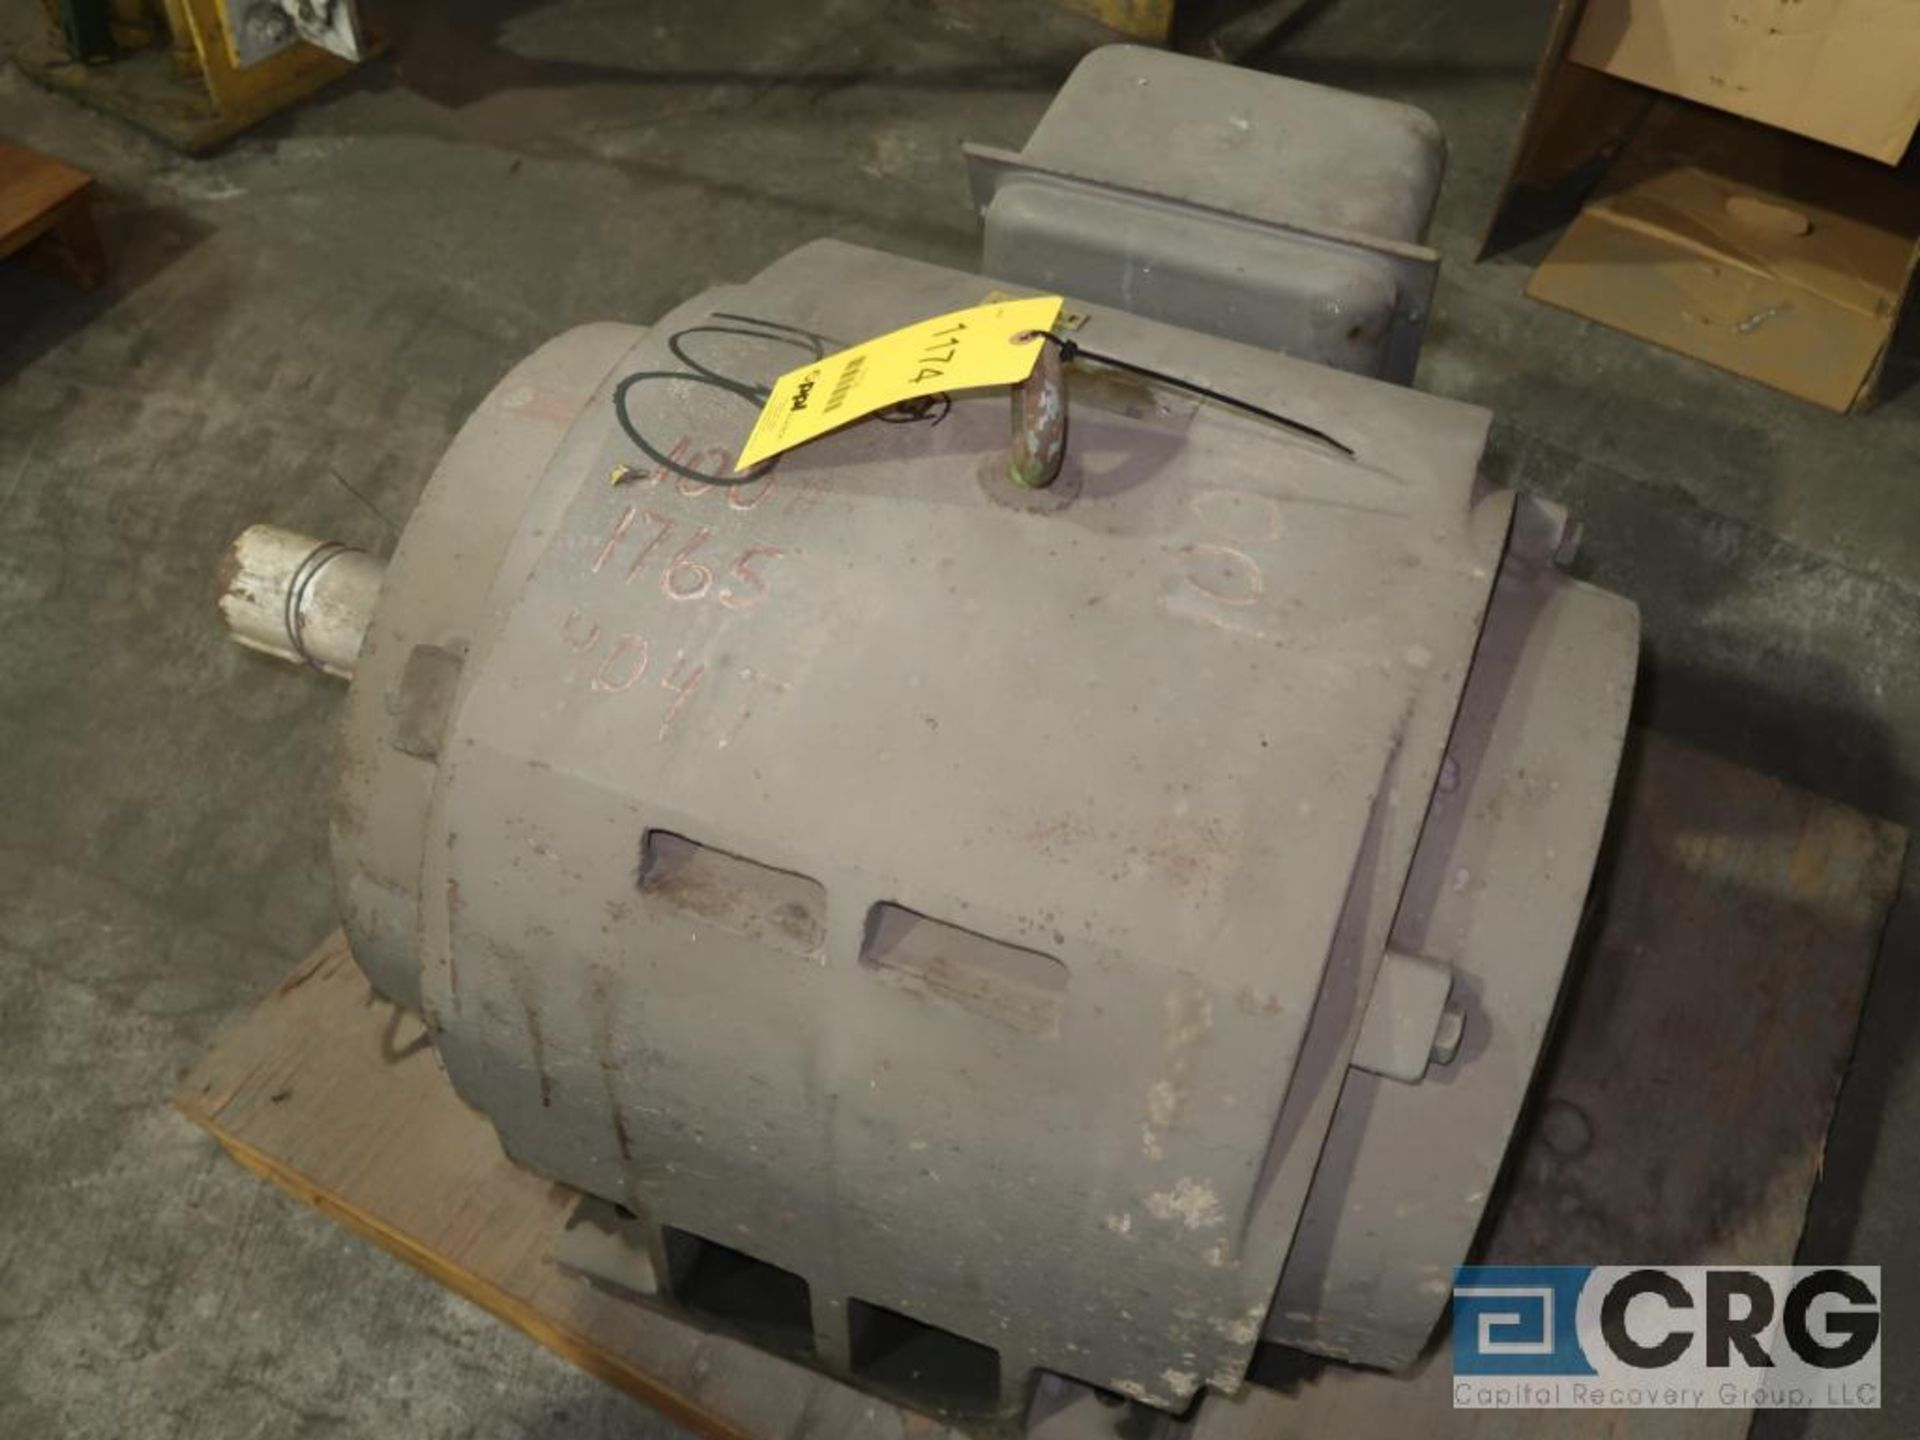 Toshiba induction motor, 100 HP, 1,765 RPMs, 230/460 volt, 3 ph., 404T frame (Finish Building)